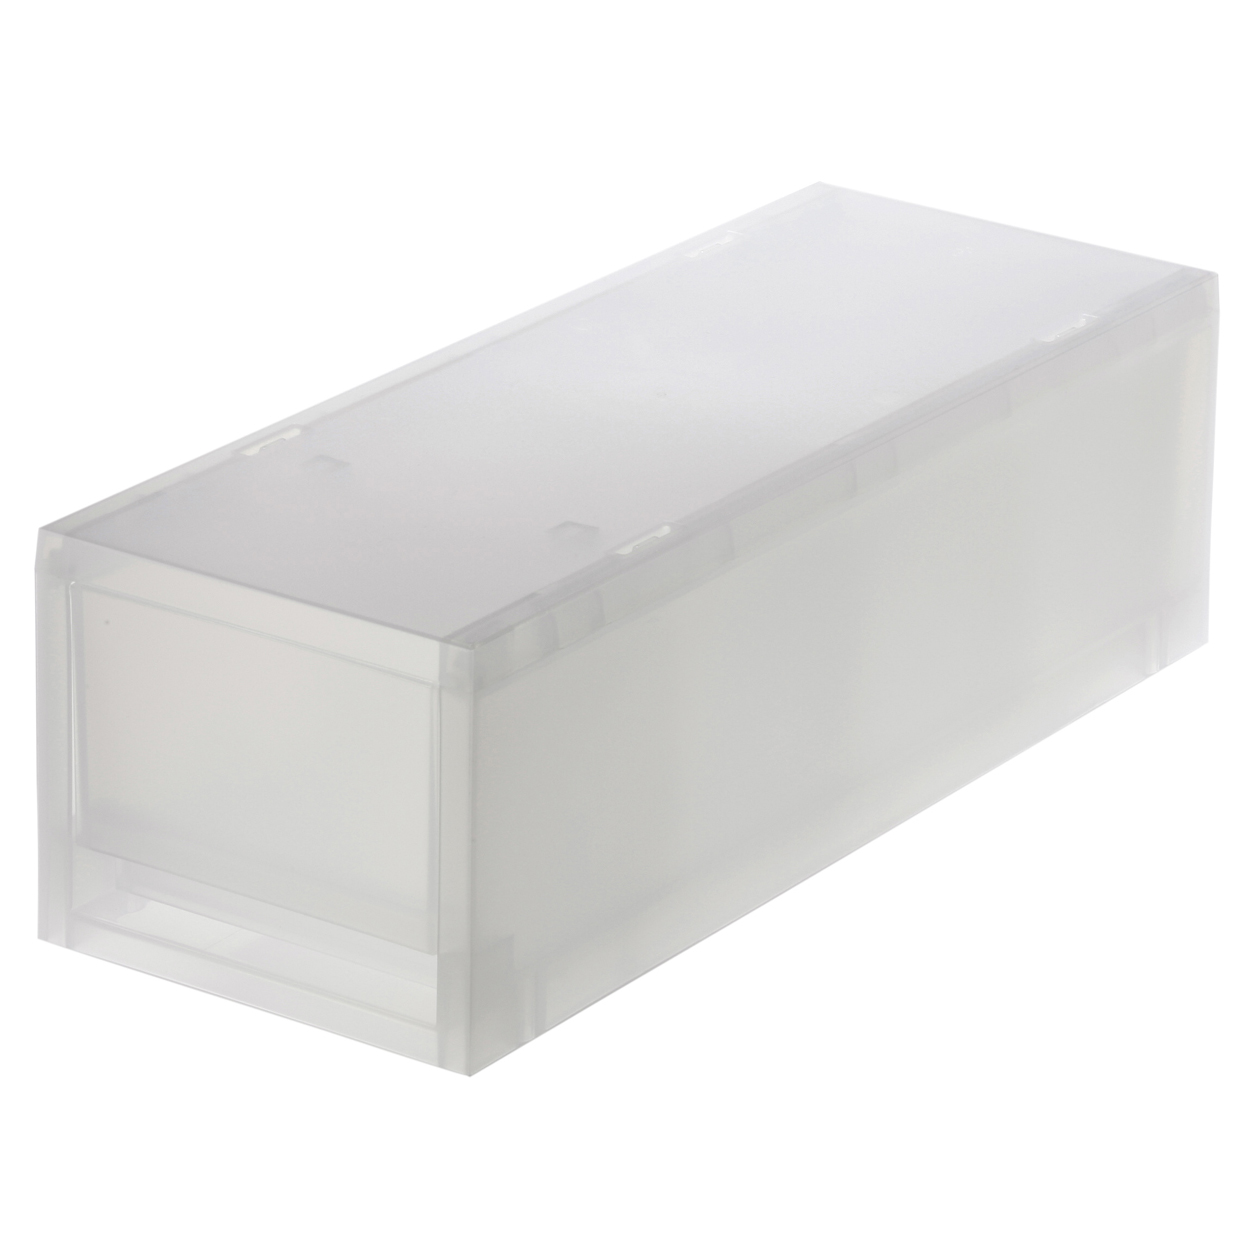 PP STORAGE CASE / SHALLOW / 1 DRAWER